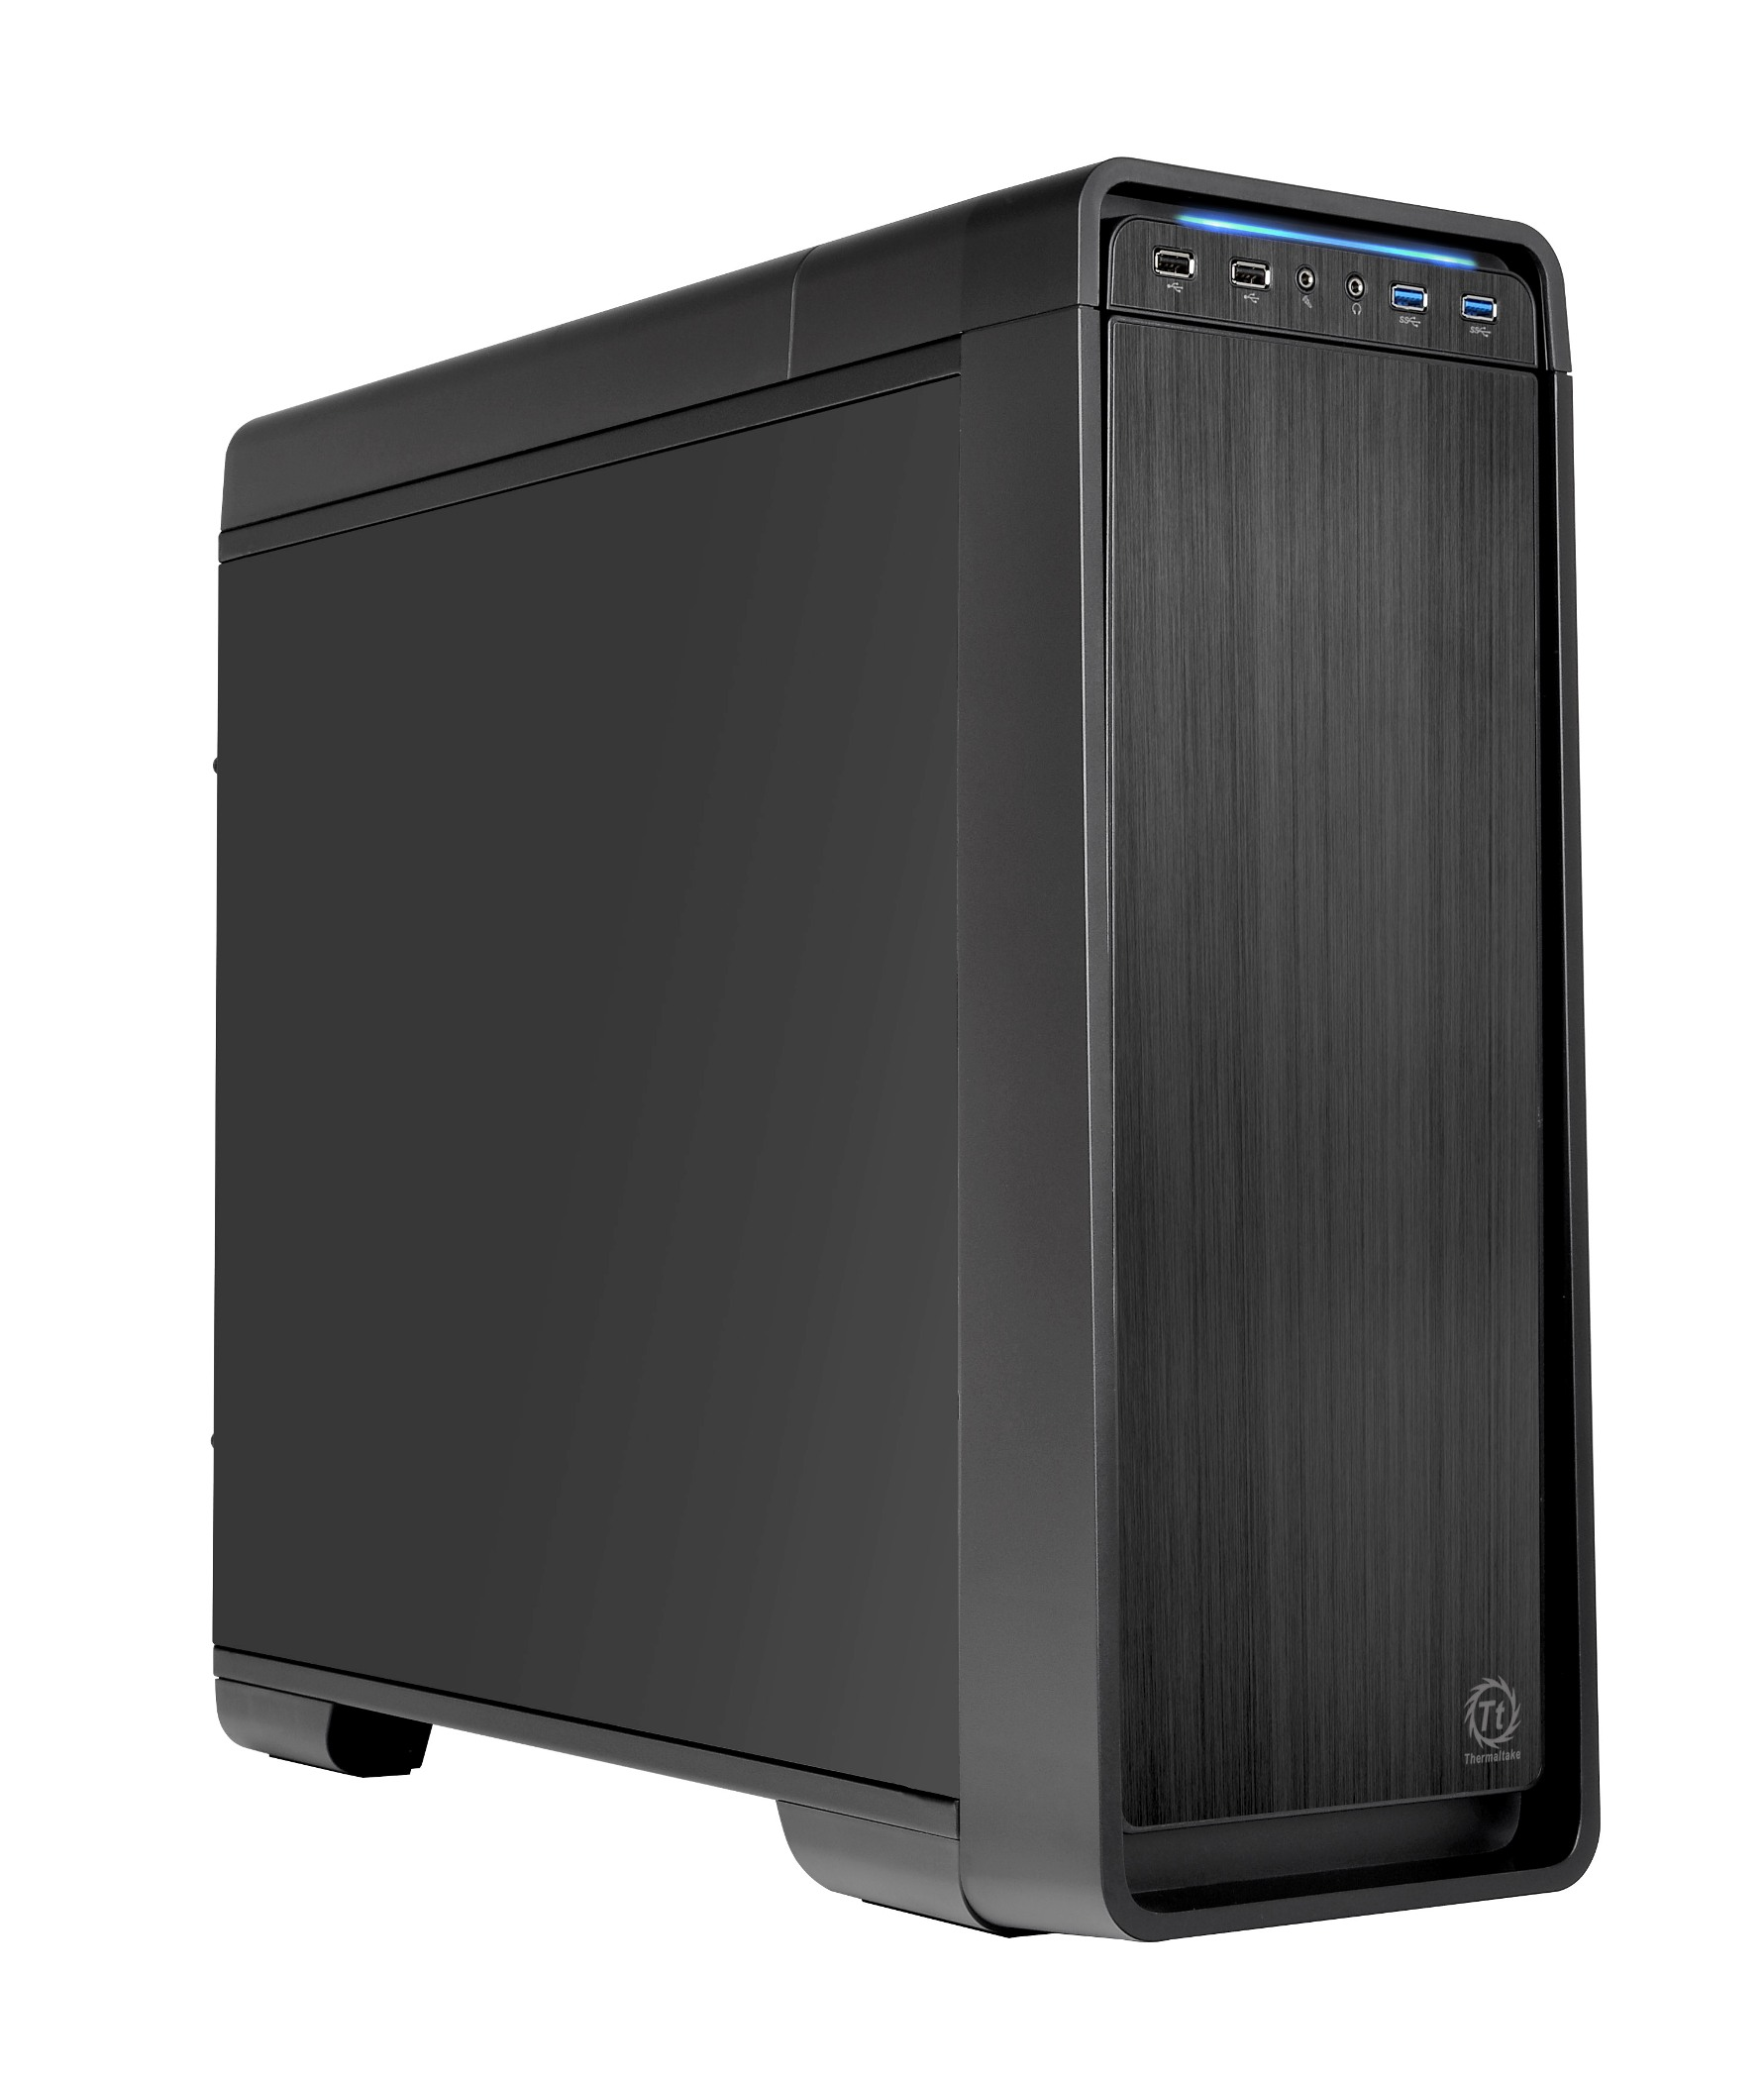 Thermaltake Urban S71 Full-tower Chassis Sophisticated Satisfaction